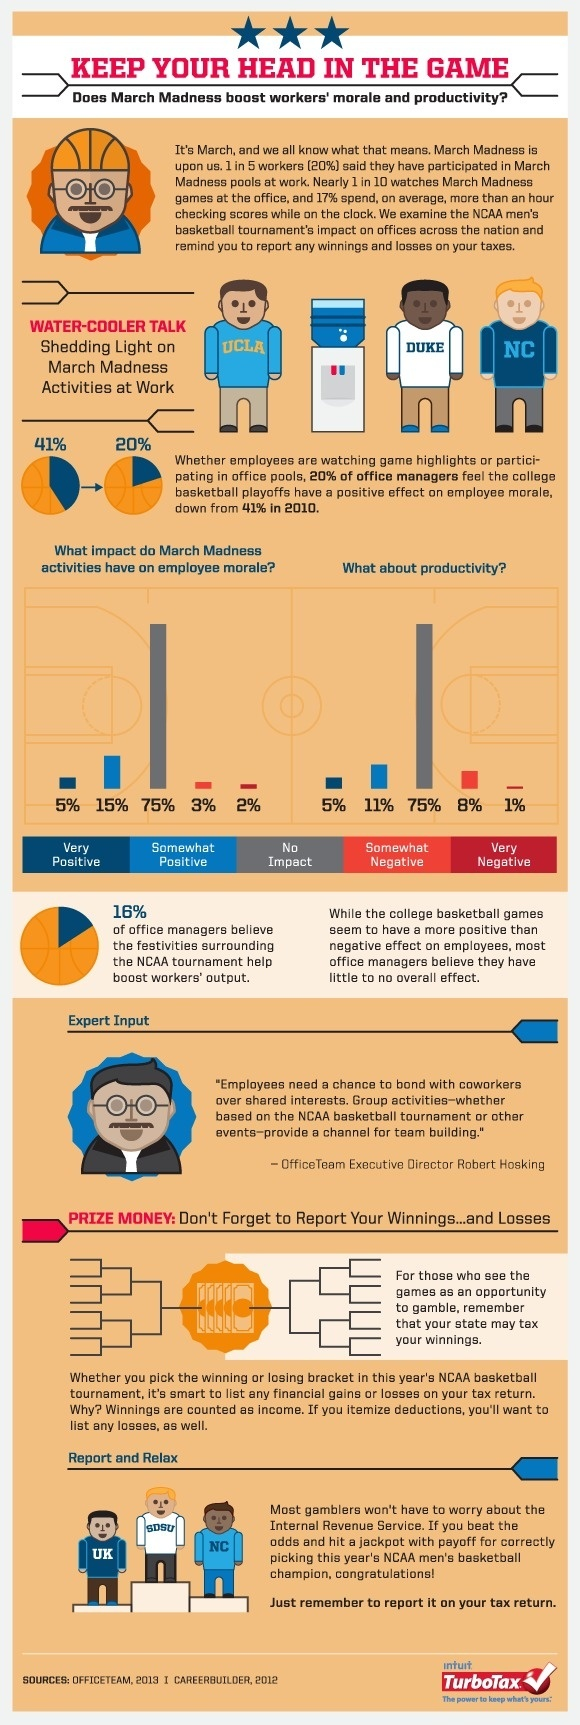 Does March Madness Boost Employee Morale and Productivity [Infographic]?   Tax Break: The TurboTax Blog #infographics #sports